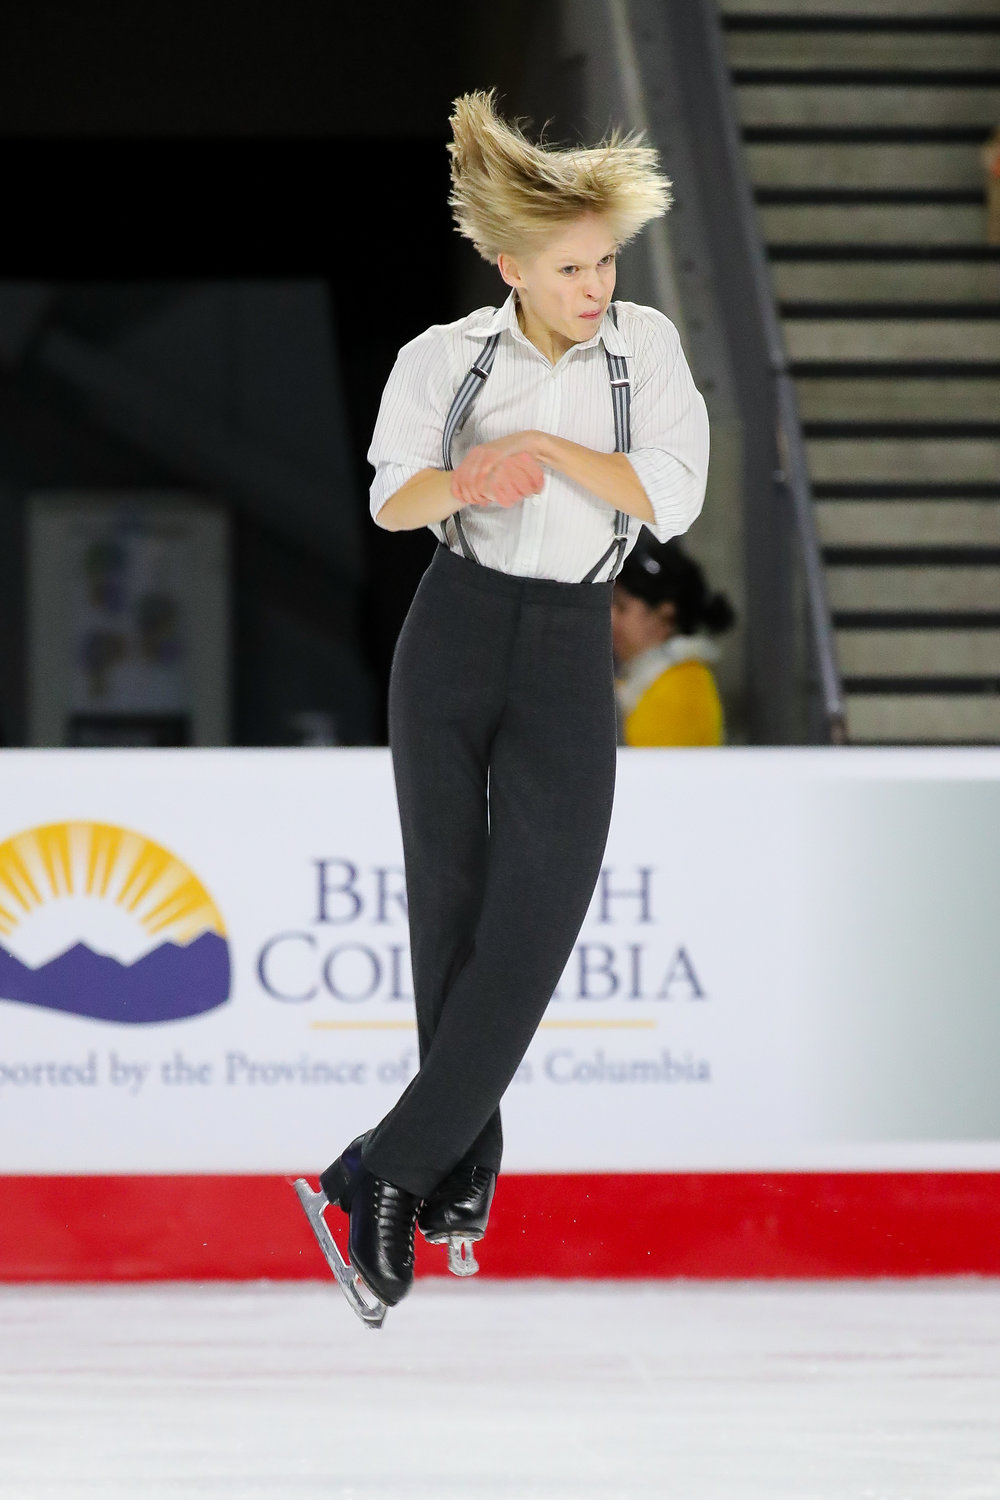 Canadian quad prodigy Stephen Gogolev, 13, competed as a senior at nationals this season.  (Skate Canada / Greg Kolz)